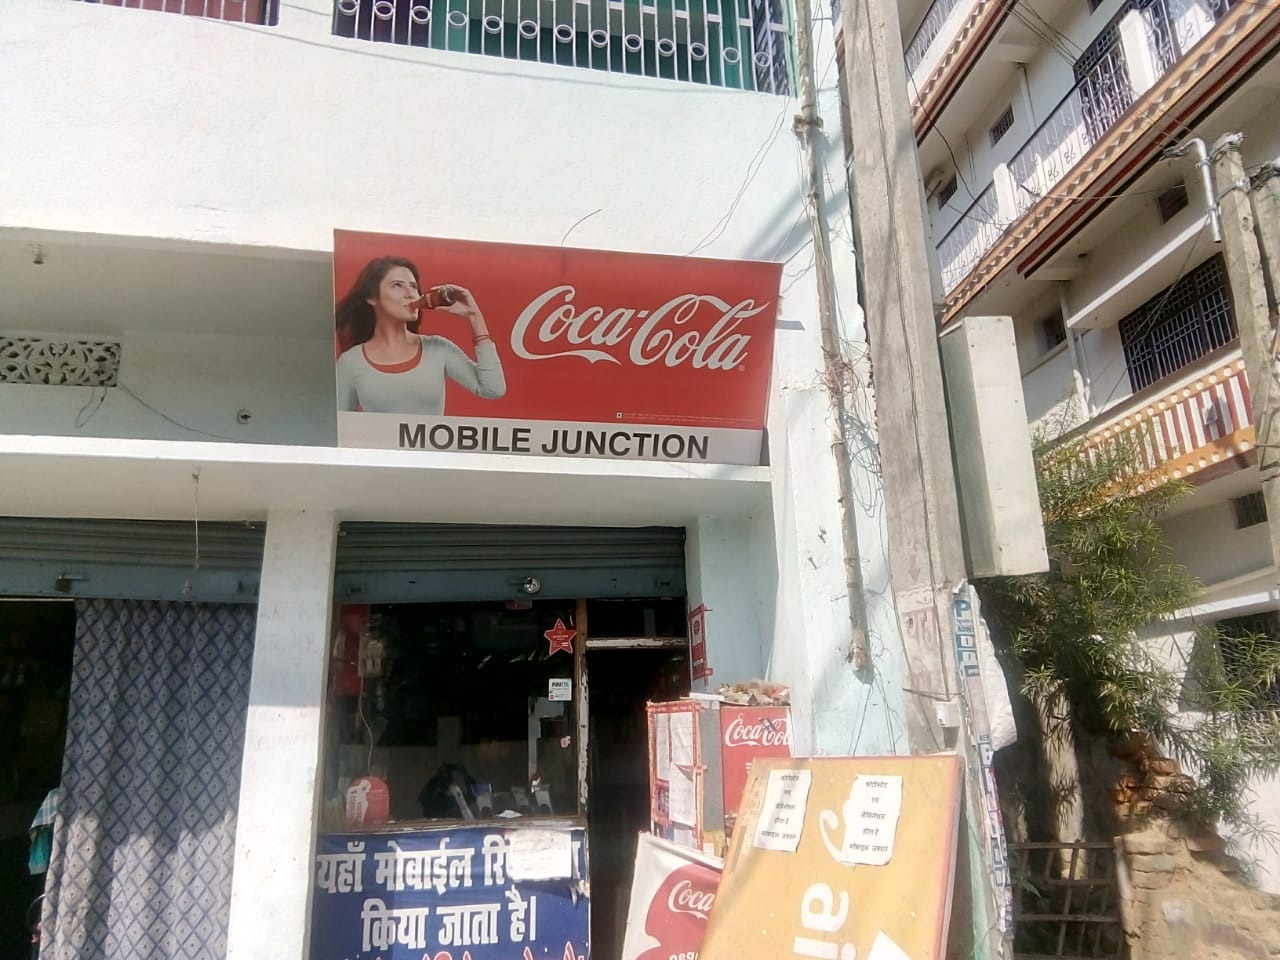 Mobile-Junction-2